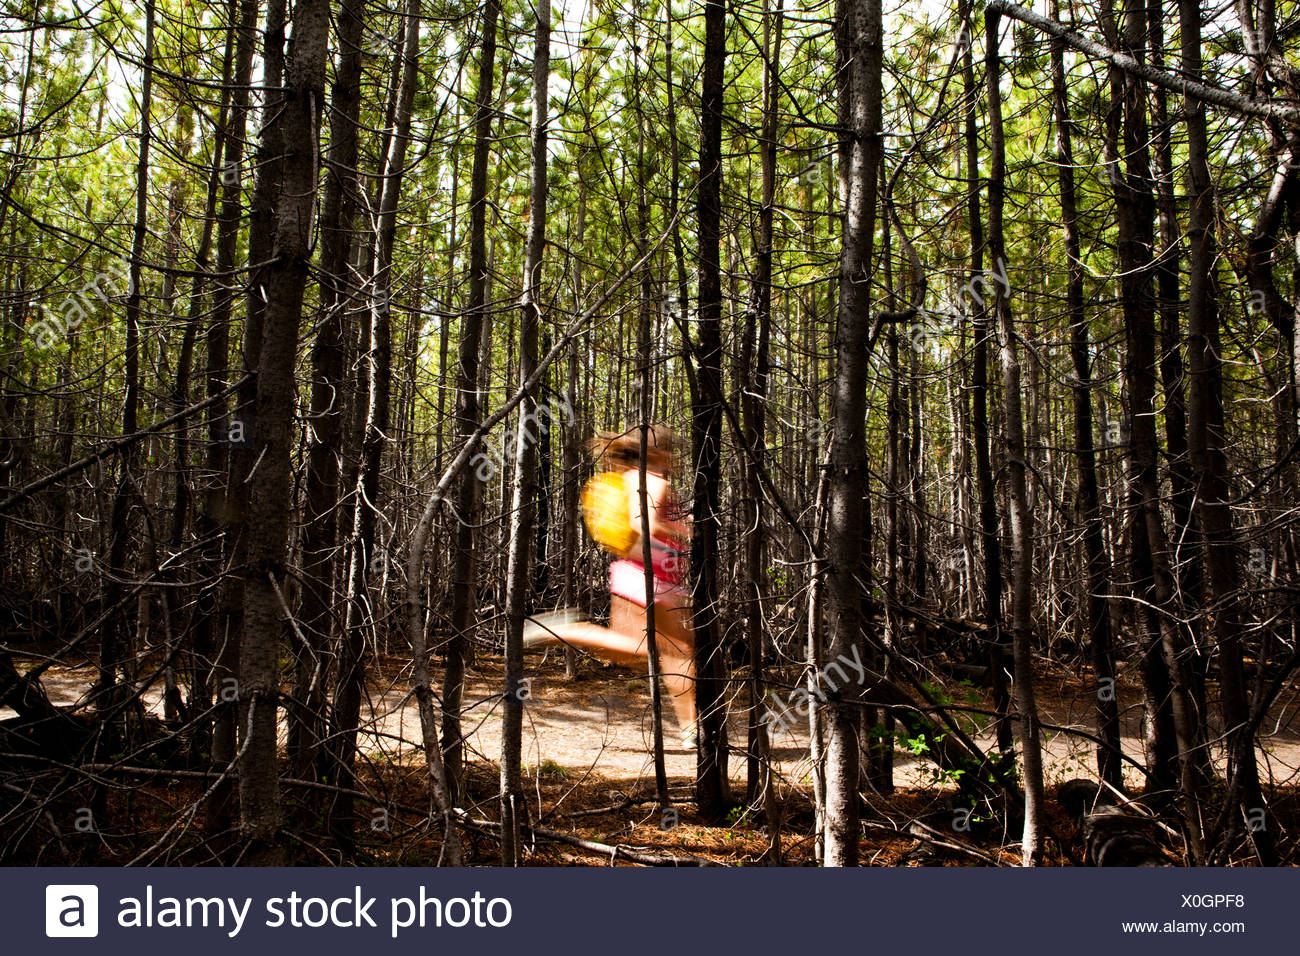 autobiography of a tree in a dense forest Thinning trees intelligently and practicing informed forest stewardship can aid fire   this might be news to some: dense forests were uncommon in many regions  of  forest-management methods, see fire in america: a cultural history of.